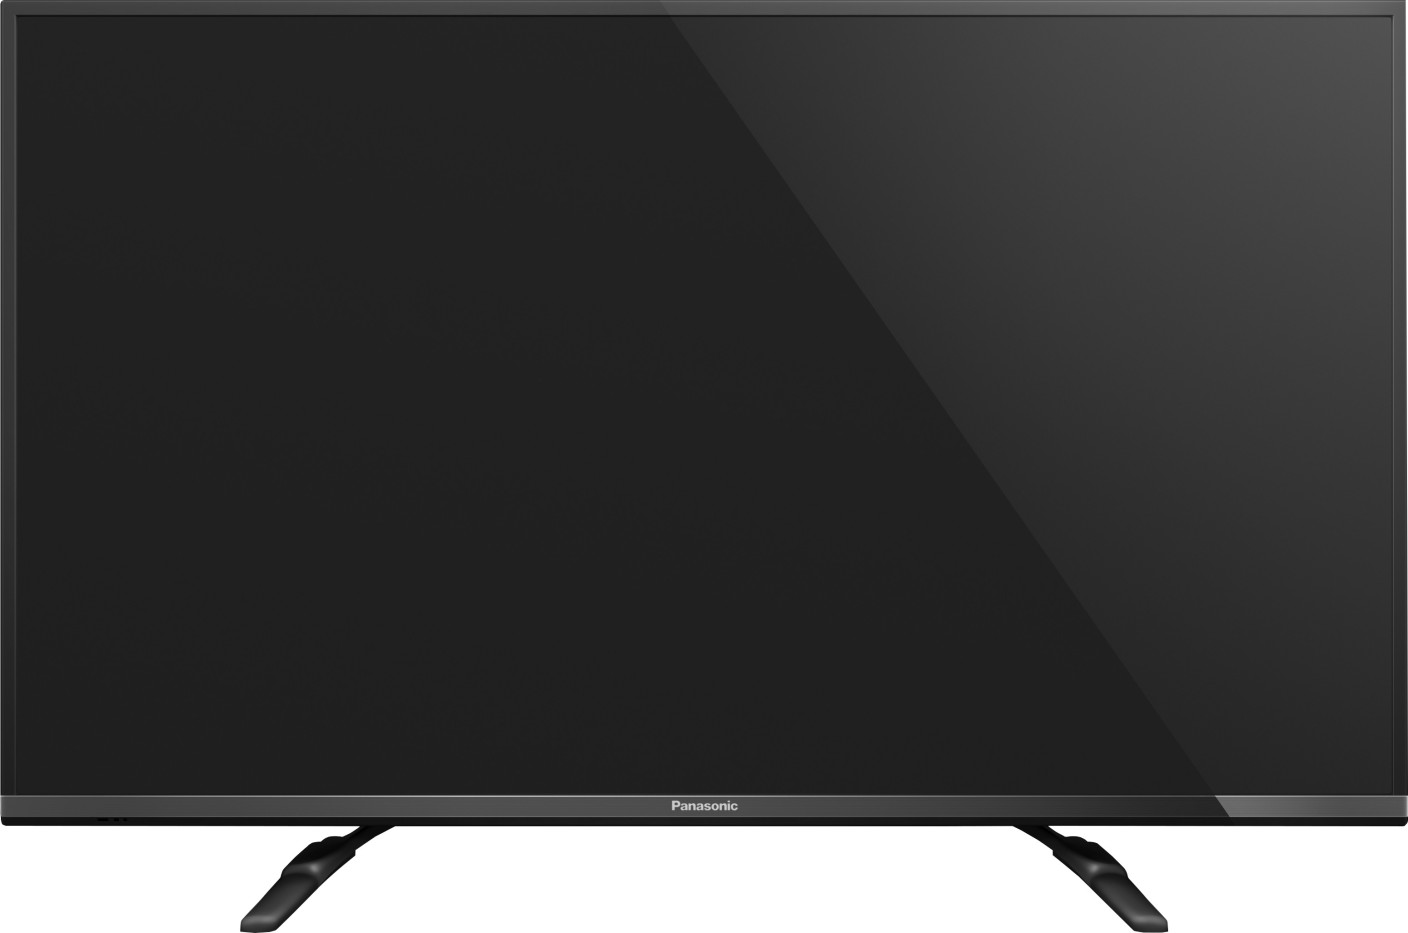 panasonic 126 cm 50 inch full hd led tv online at best prices in india. Black Bedroom Furniture Sets. Home Design Ideas